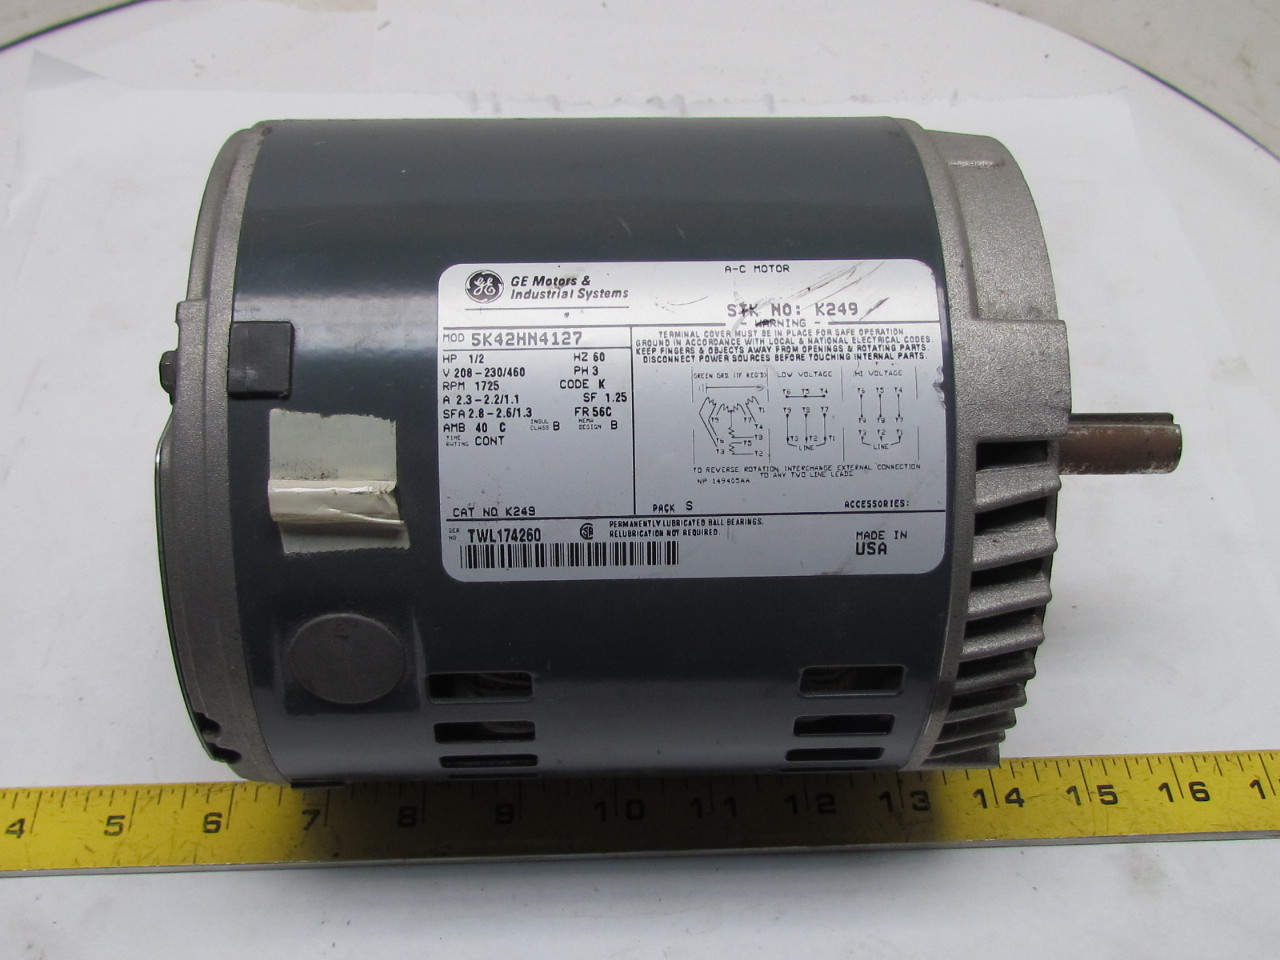 general electric 5k42hn4127 3ph ac motor 1 2hp 1725 rpm